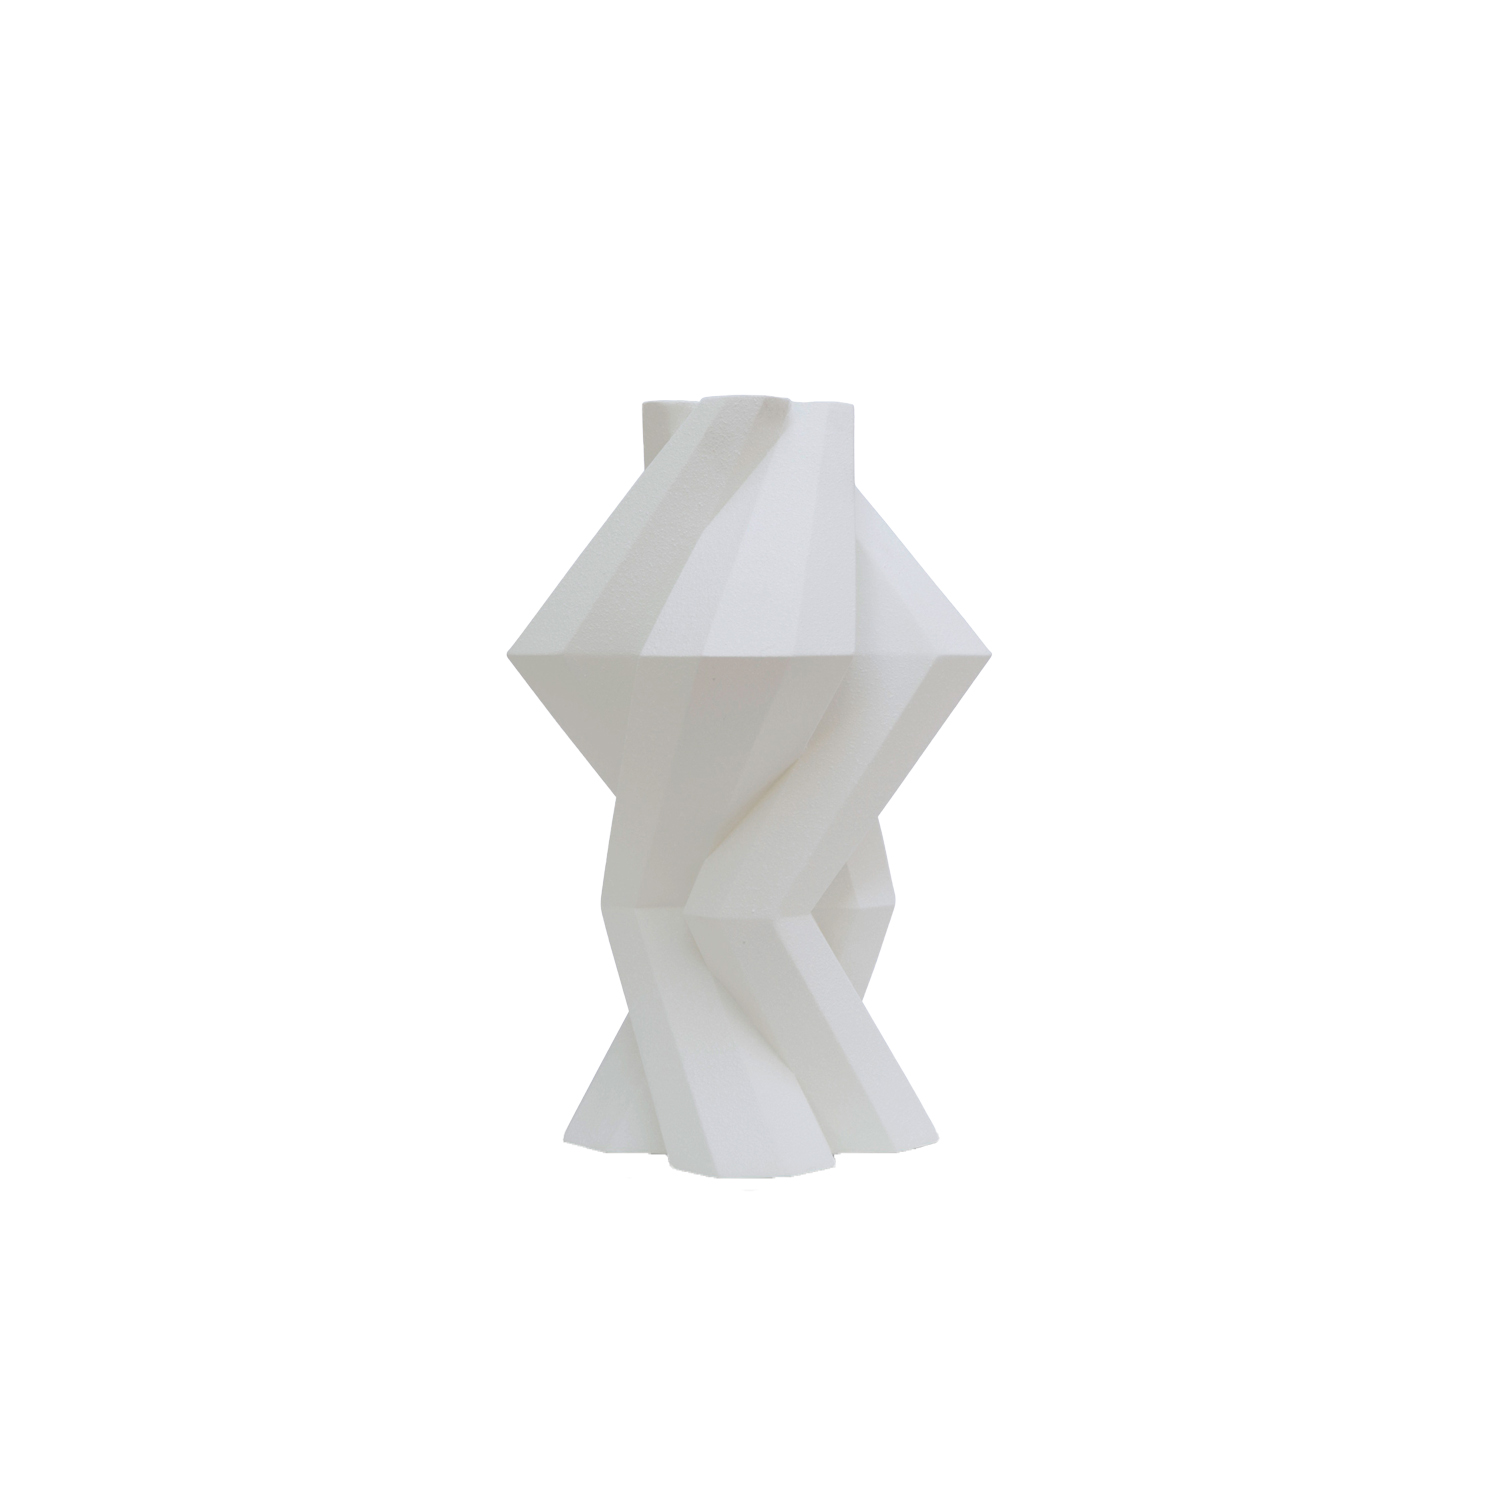 Fortress Column Vase Crackled White - Designer Lara Bohinc explores the marriage of ancient and futuristic form in the new Fortress Vase range, which has created a more complex geometric and modern structure from the original inspiration of the octagonal towers at the Diocletian Palace in Croatia. The resulting hexagonal blocks interlock and embrace to allow the play of light and shade on the many surfaces and angles. There are four Fortress shapes: the larger Column and Castle (45cm height), the Pillar (30cm height) and the Tower vase (37cm height). These are hand made from ceramic in a small Italian artisanal workshop and come in three finishes: dark gold, bronze and speckled white.  | Matter of Stuff